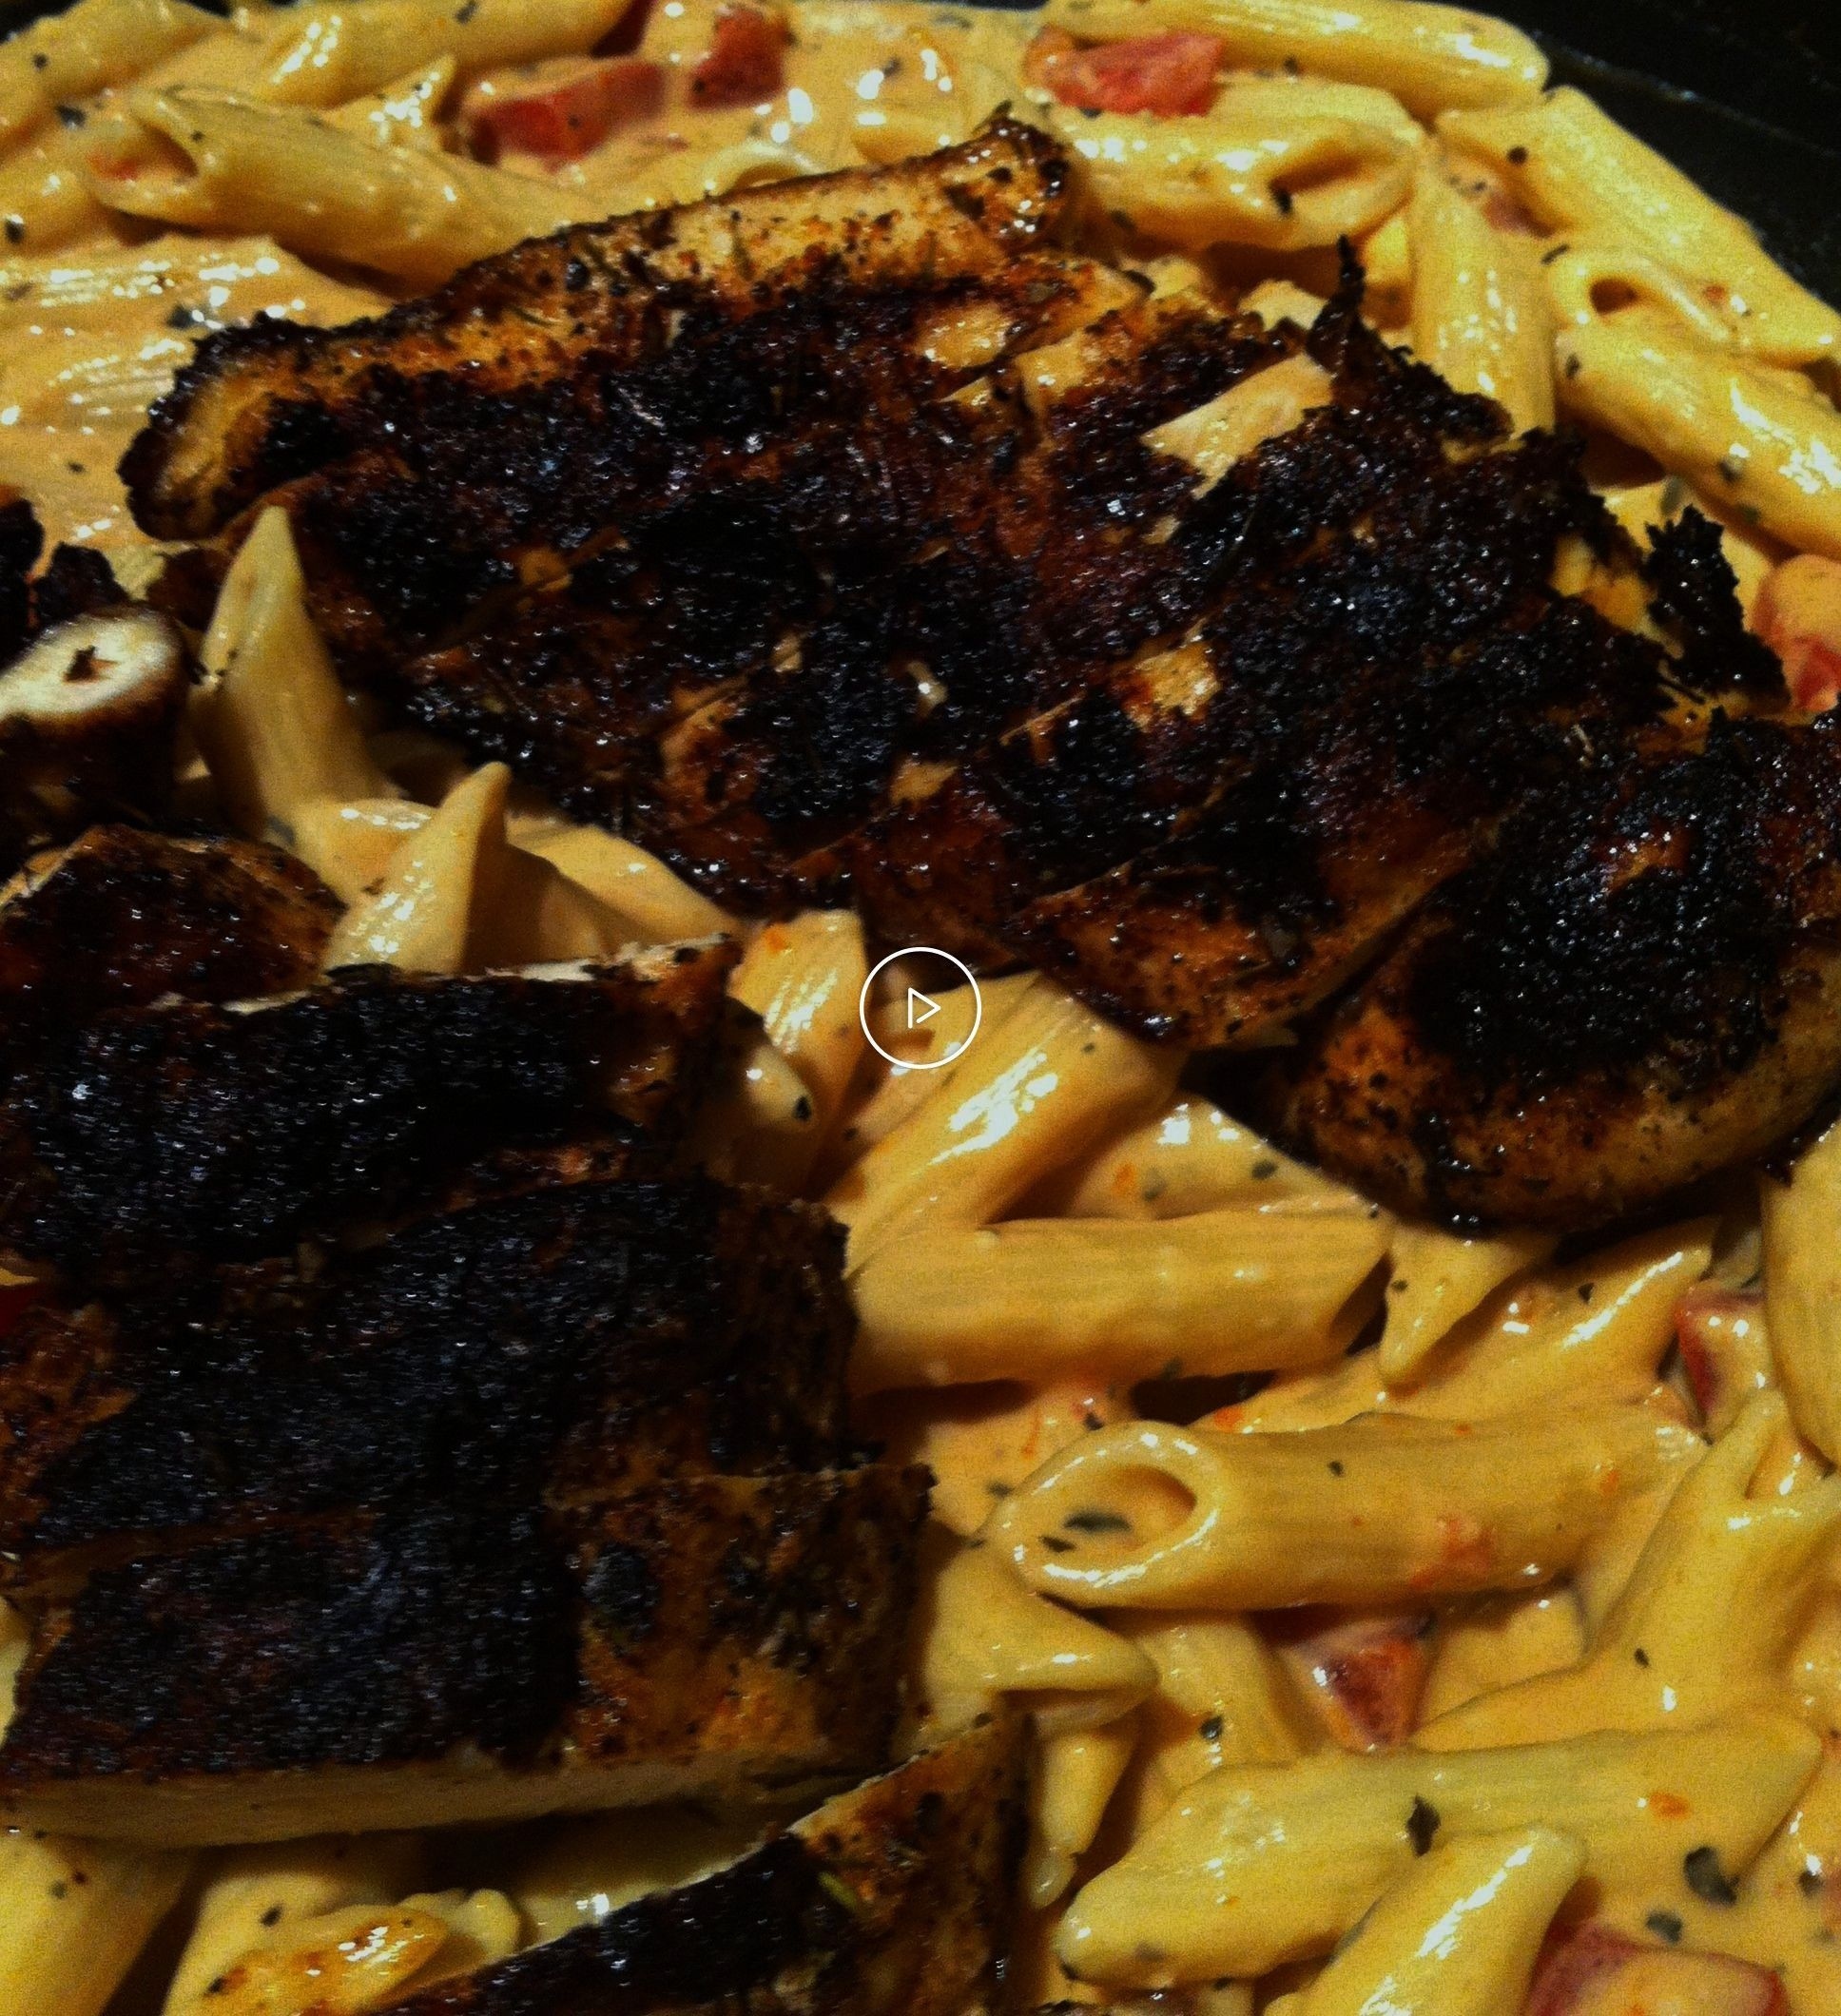 Penne with Blackened Chicken and SunDried Tomato Basil Sauce #blackenedchicken #blackened #sundried #chicken #tomato #penne #basil #sauce #with #andPenne with Blackened Chicken and Sun-Dried Tomato Basil SaucePenne with Blackened Chicken and Sun-Dried Tomato Basil Sauce #blackenedchicken Penne with Blackened Chicken and SunDried Tomato Basil Sauce #blackenedchicken #blackened #sundried #chicken #tomato #penne #basil #sauce #with #andPenne with Blackened Chicken and Sun-Dried Tomato Basil SaucePe #blackenedchicken